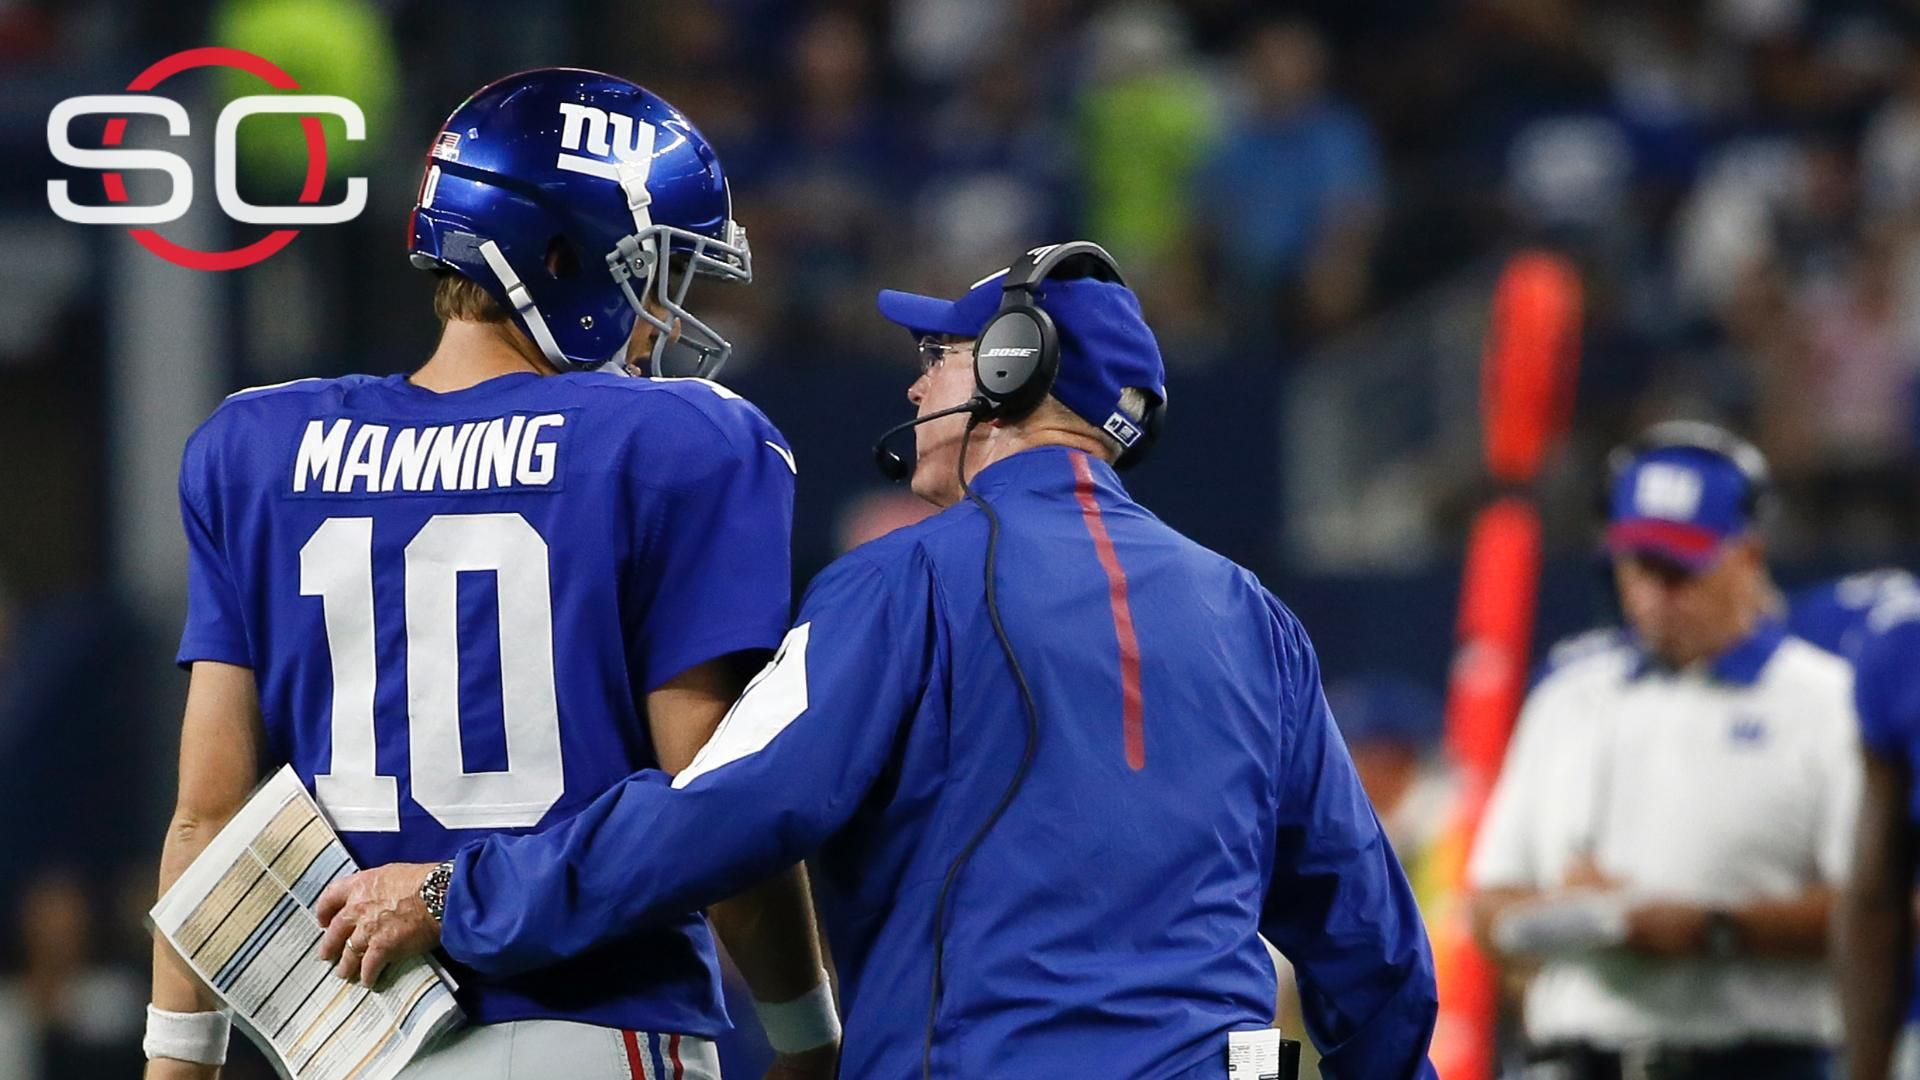 https://secure.espncdn.com/combiner/i?img=/media/motion/2015/0915/dm_150915_nfl_graziano_on_giants/dm_150915_nfl_graziano_on_giants.jpg